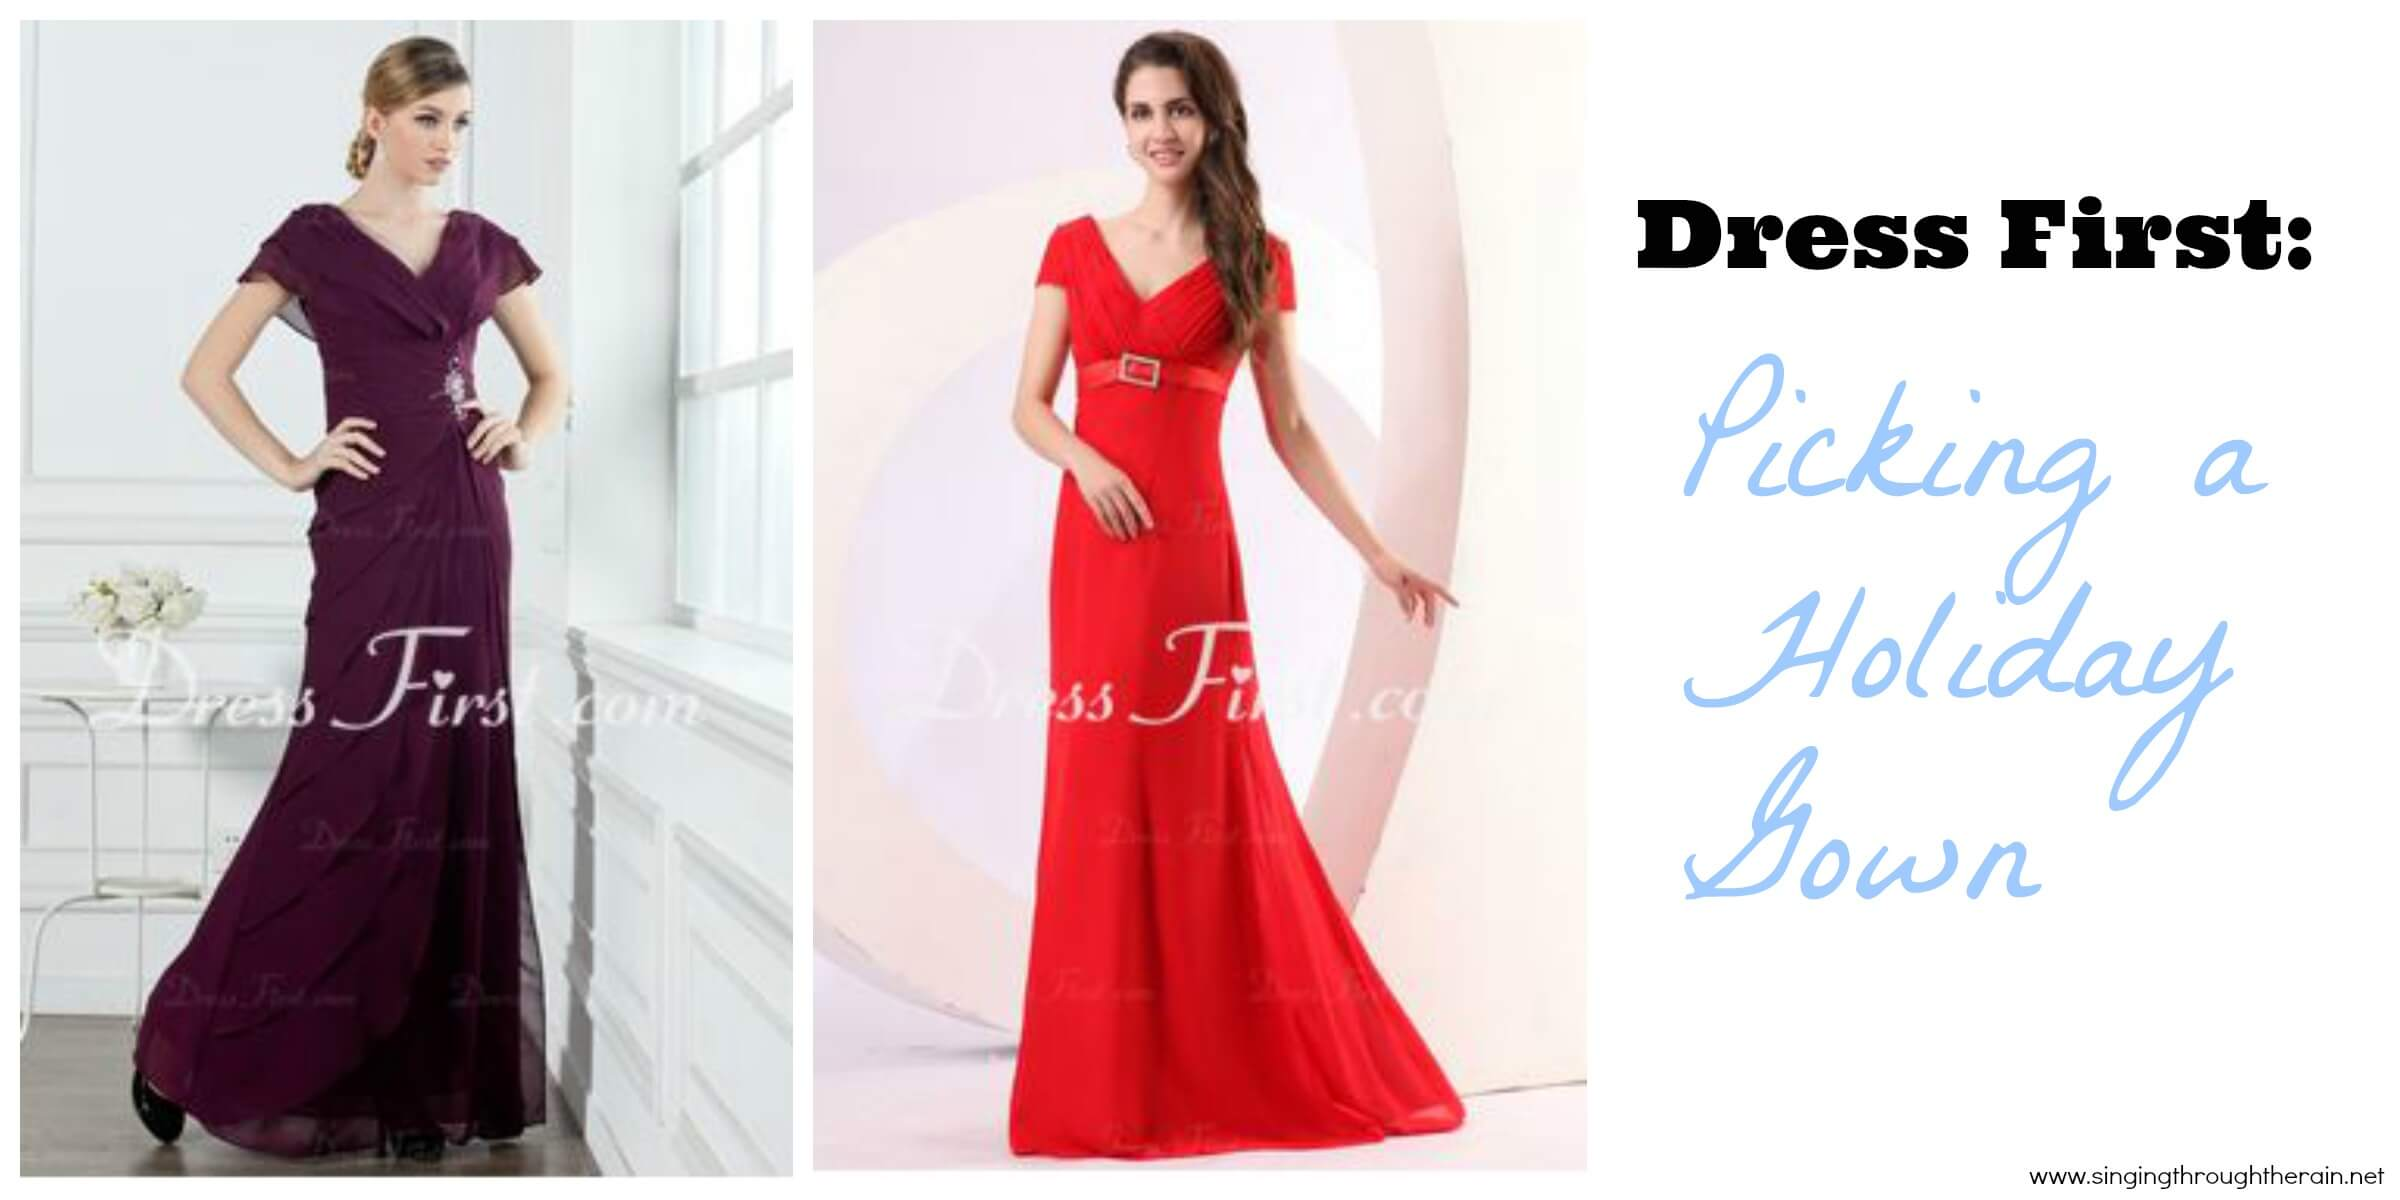 Picking a Holiday Gown